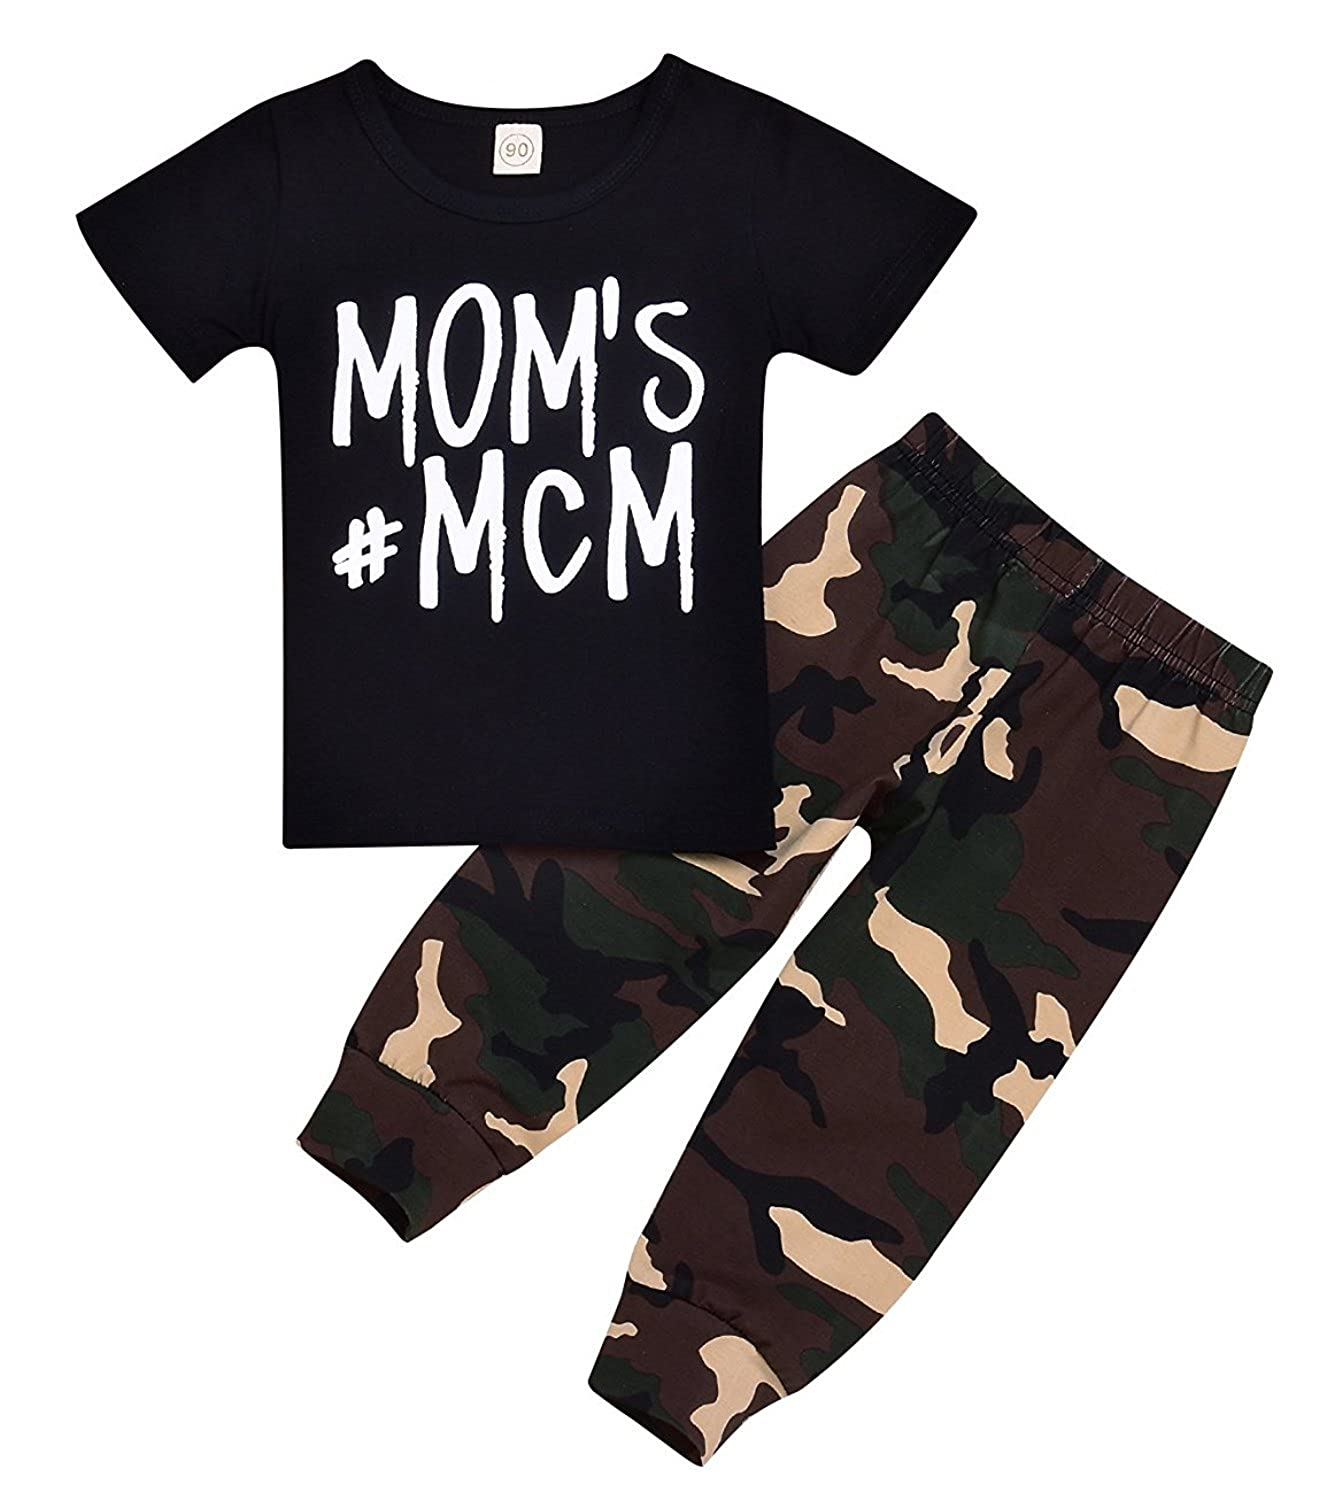 6130c1d61bf8 This outfit quality totally beat the price. ????【Style】:Baby short sleeve clothes  printed MOM'S MCM and camouflage pants.;affordable and durable.